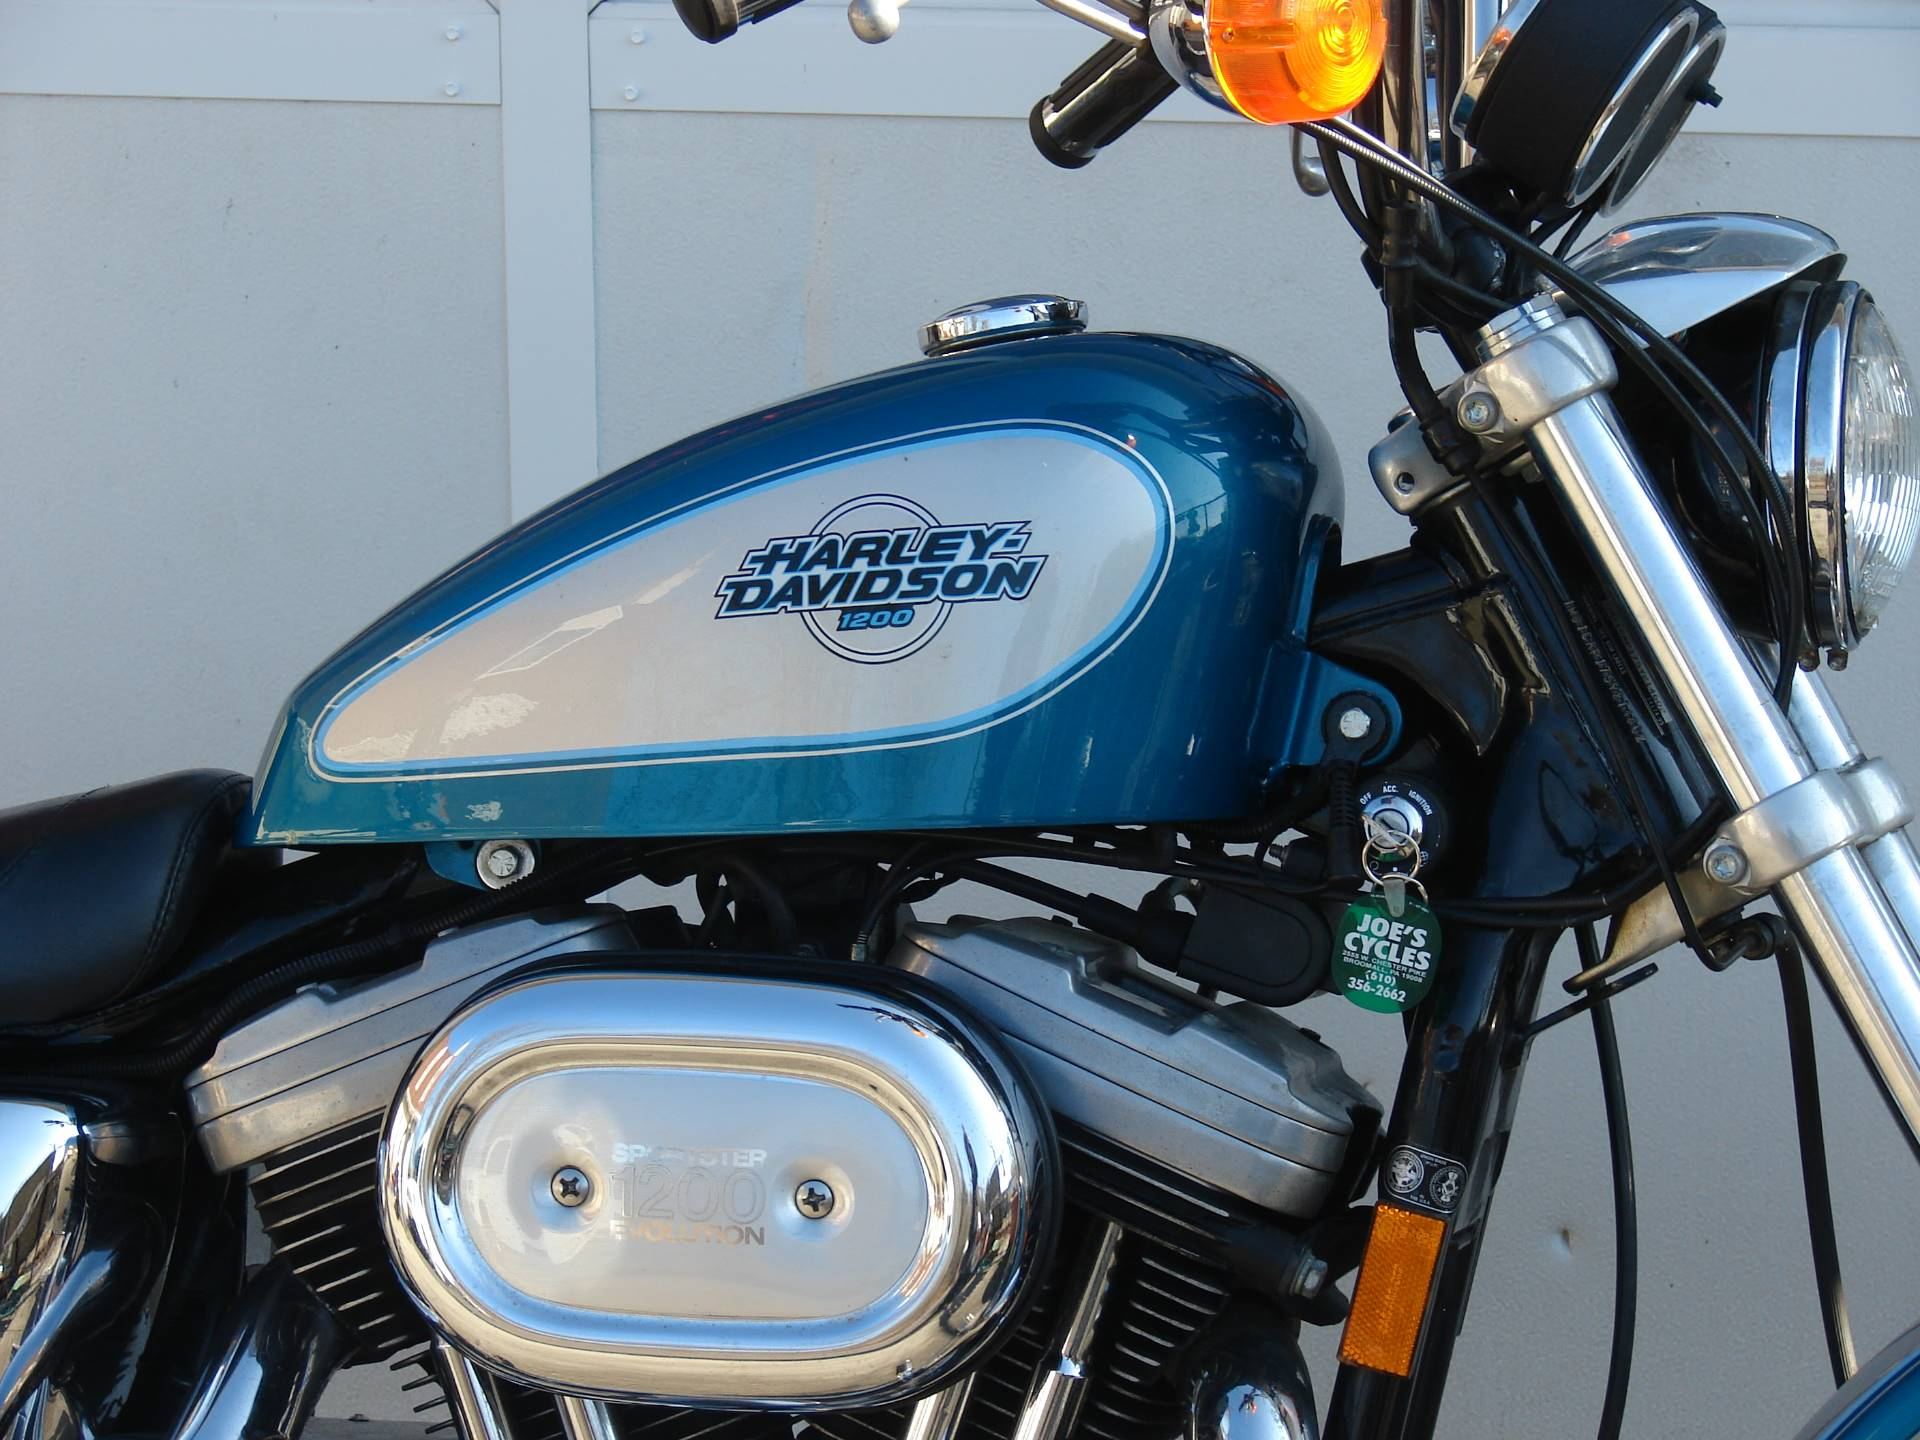 1995 Harley-Davidson 1200 Sportster  (Teal Blue and Silver) in Williamstown, New Jersey - Photo 12